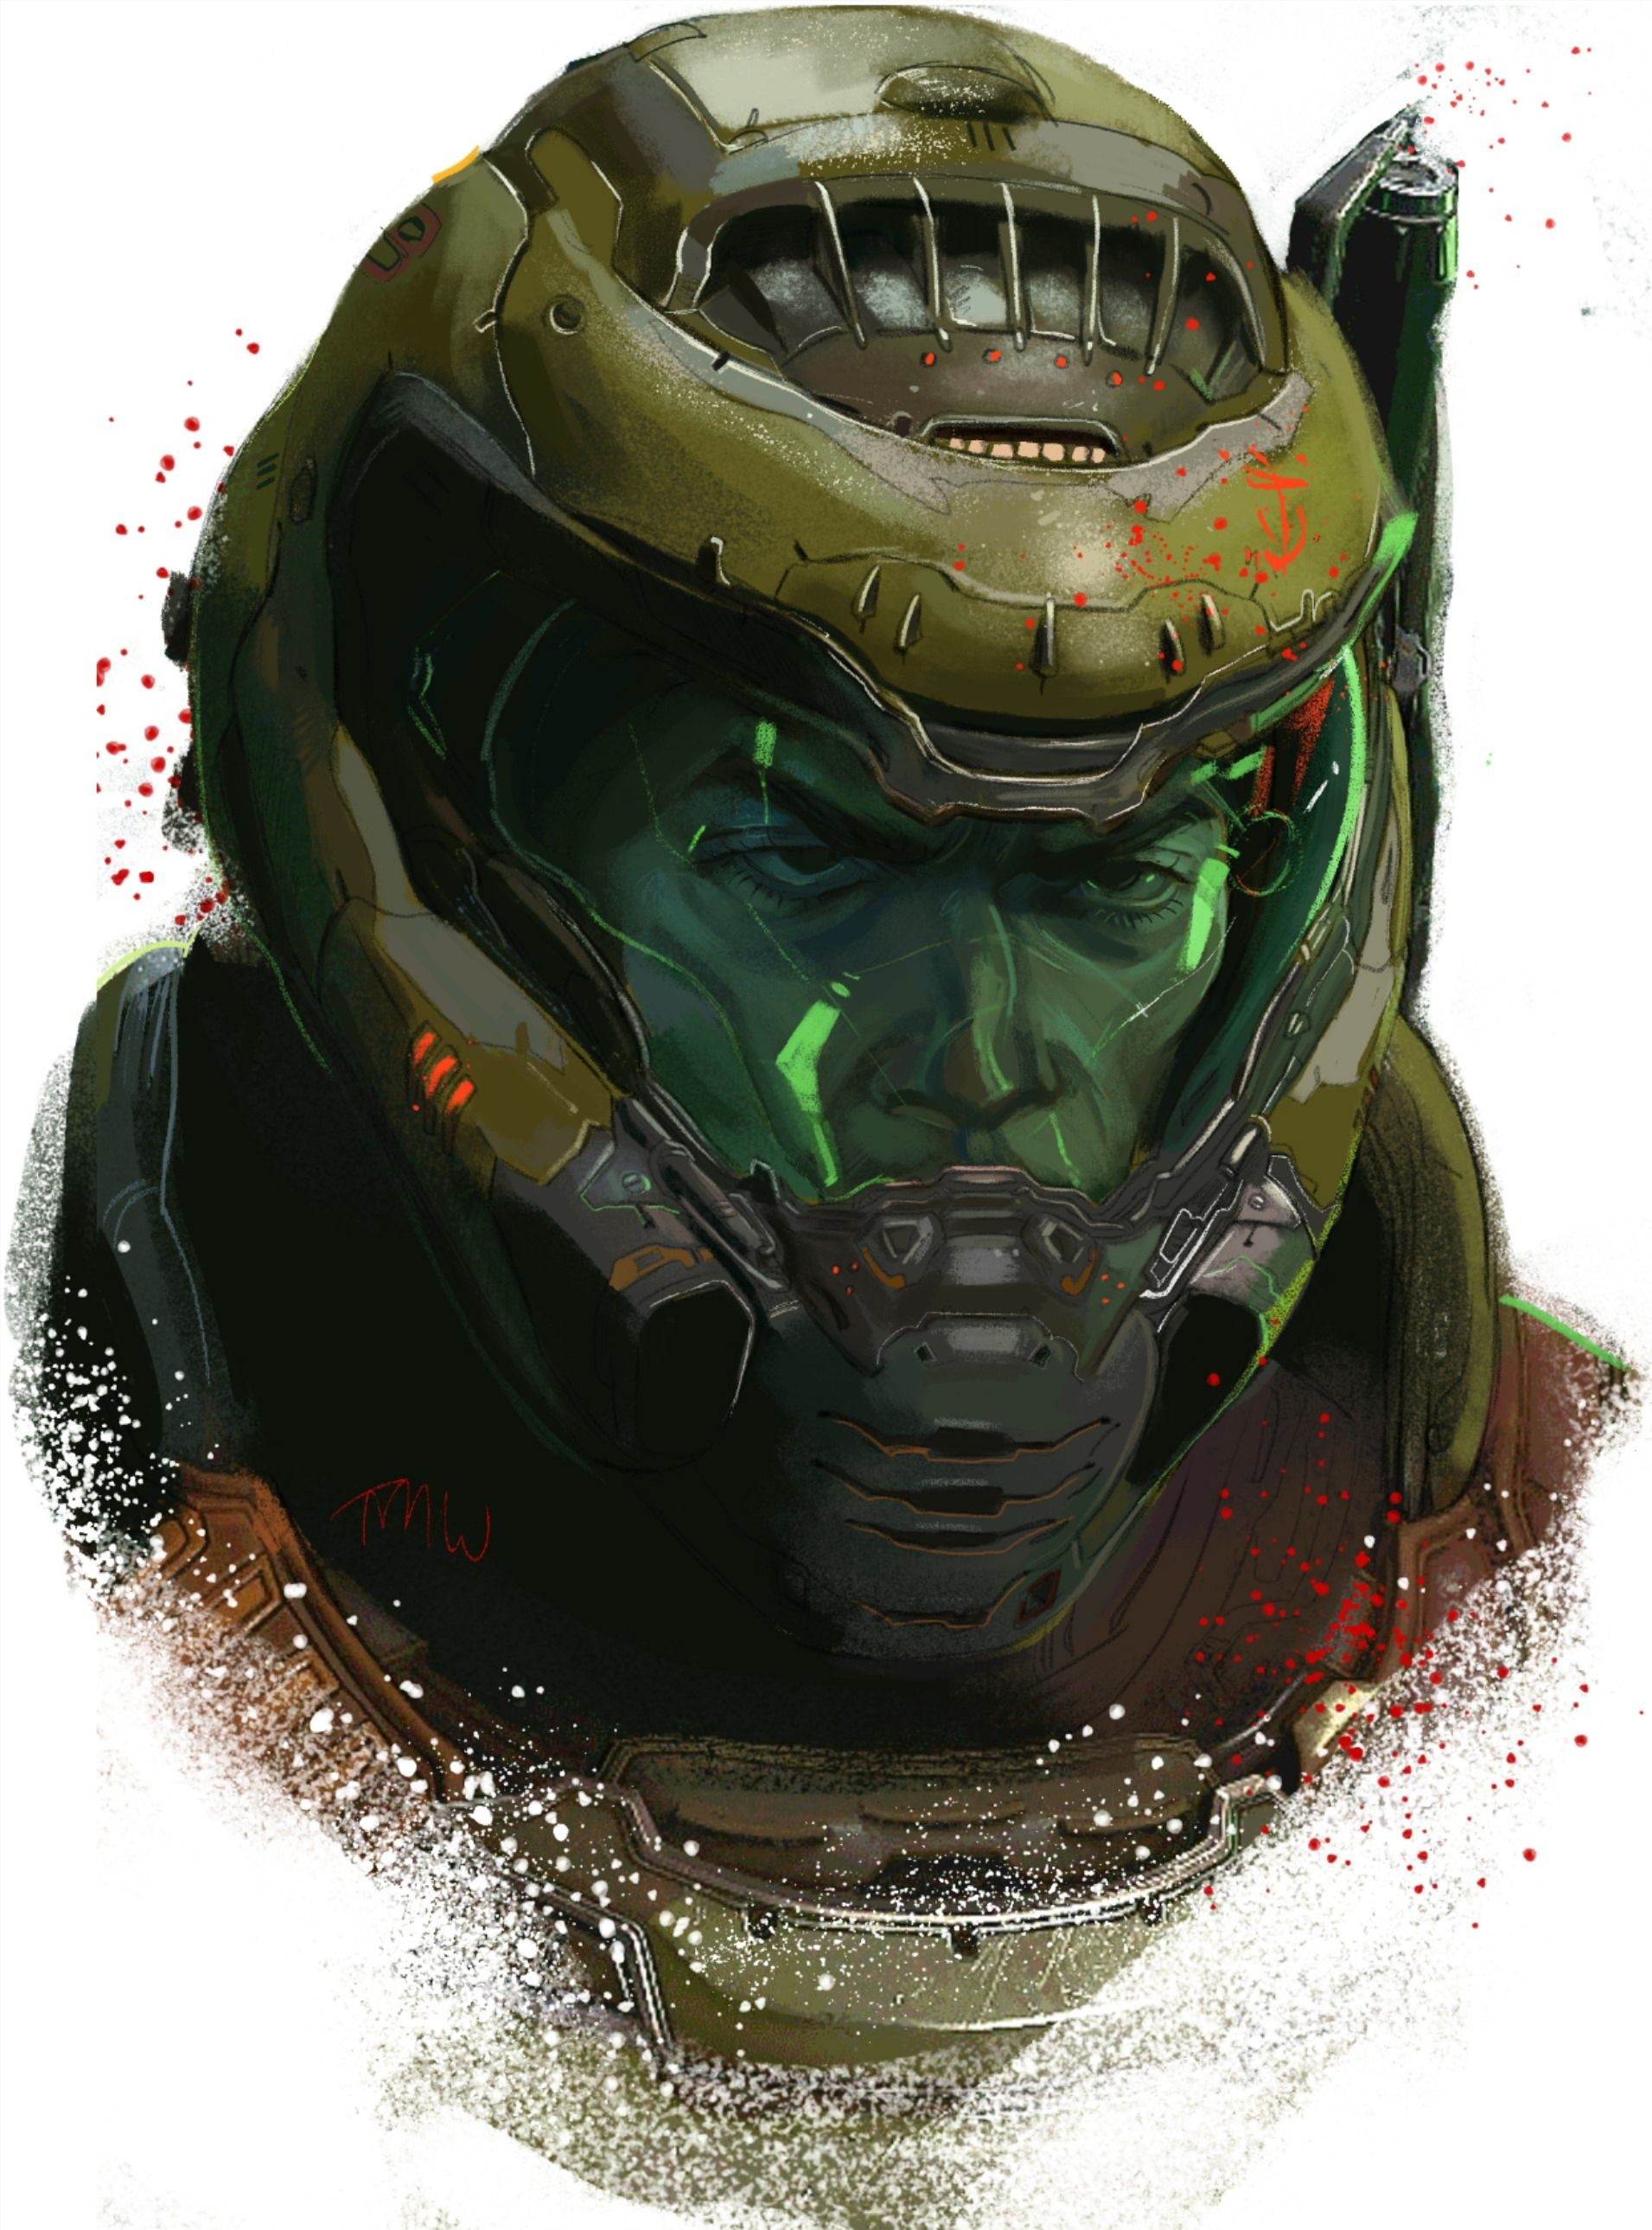 Pin By Moizz On The Doom Slayer In 2020 Doom Videogame Doom